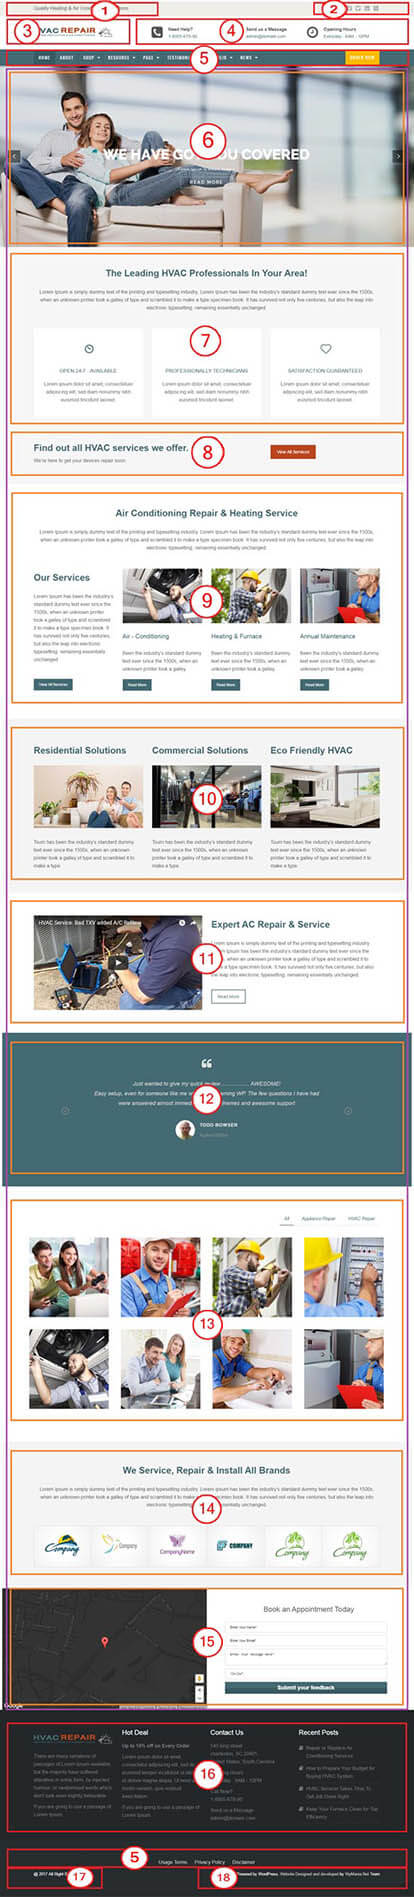 HVAC Repair WordPress Theme : Website Template For HVAC Professionals Documentation